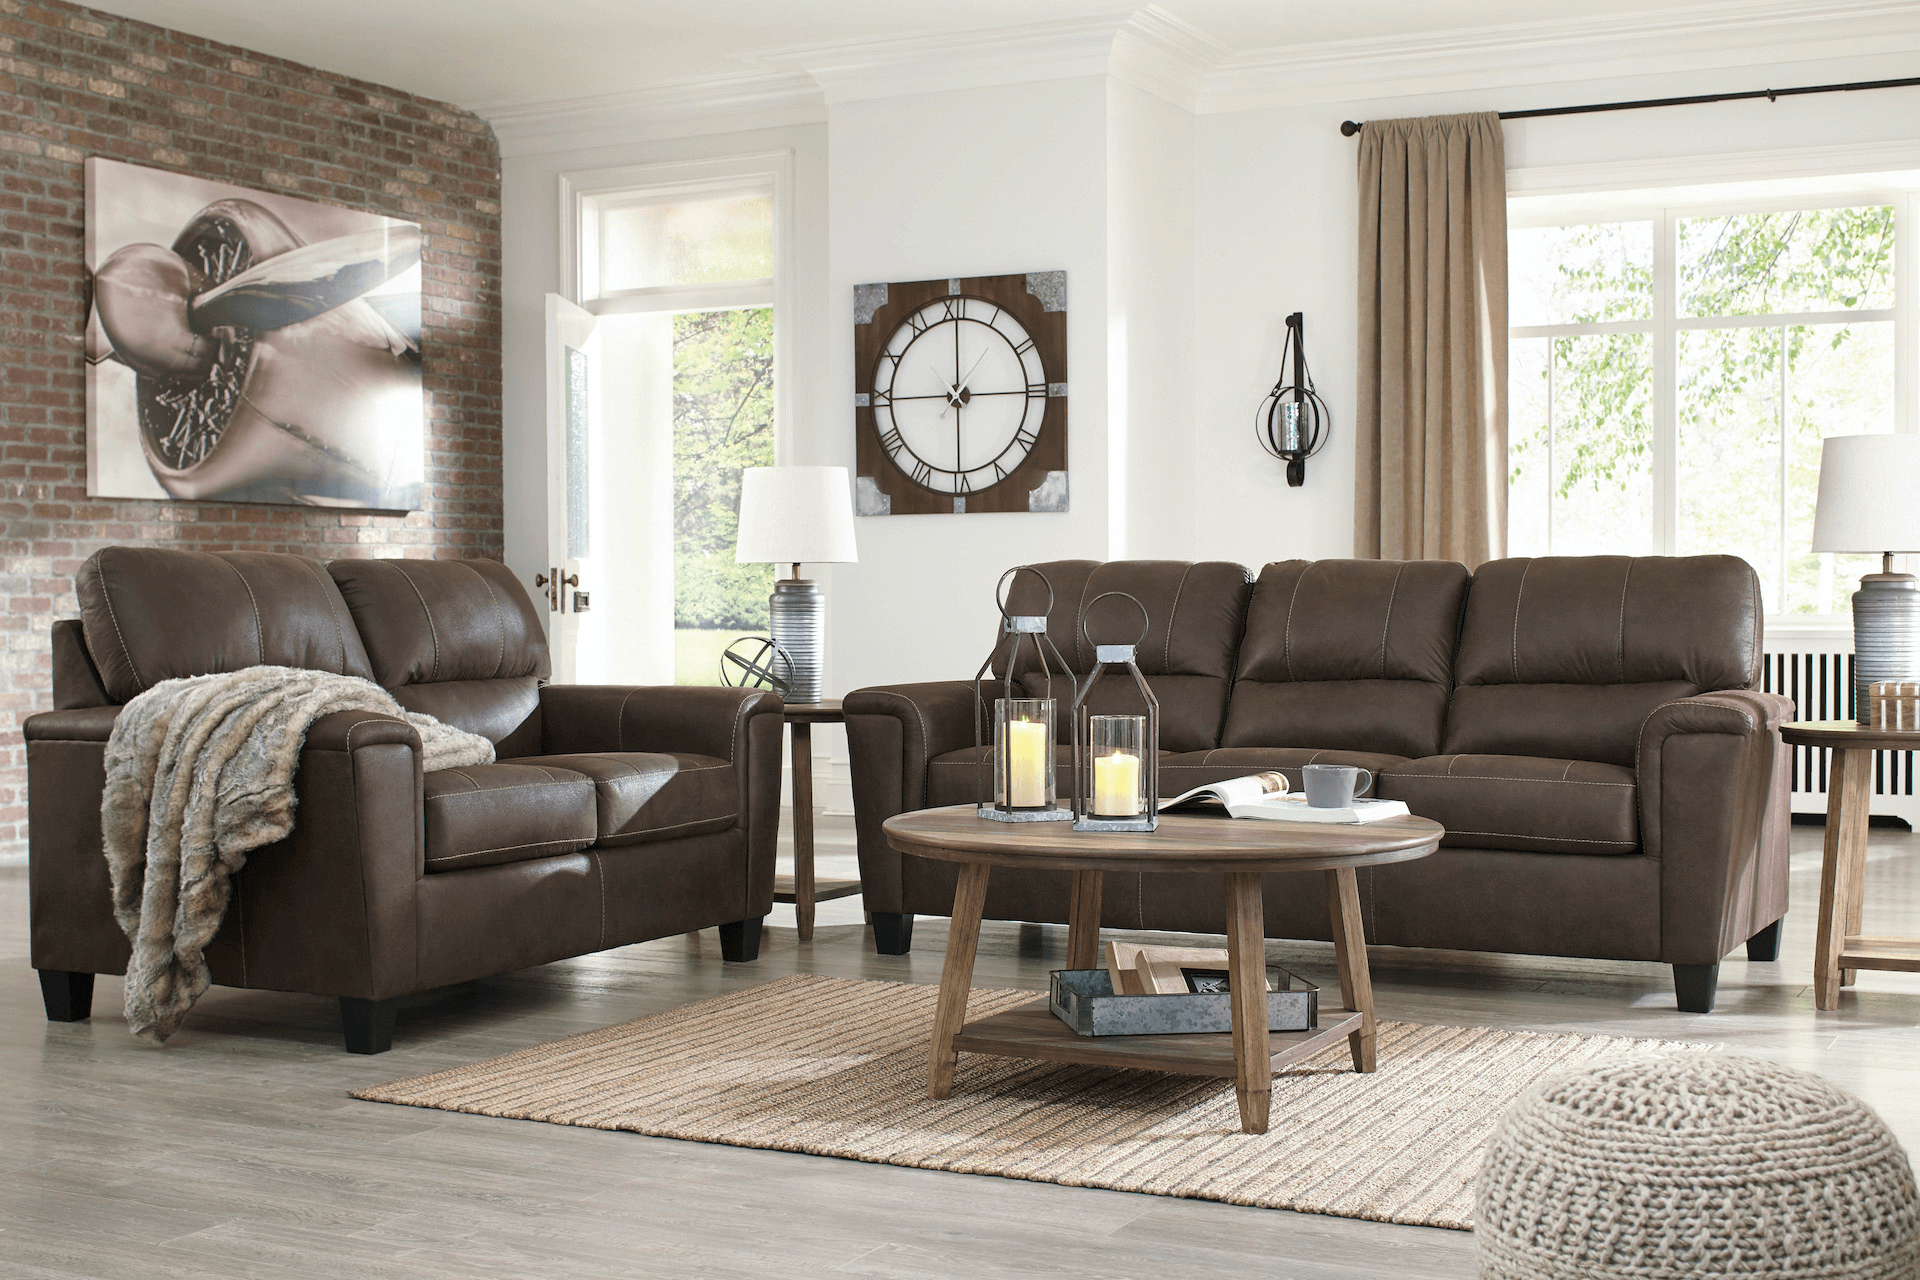 Atlantic_Furniture-Sofa_Sets-94003_T221-13_hi-res